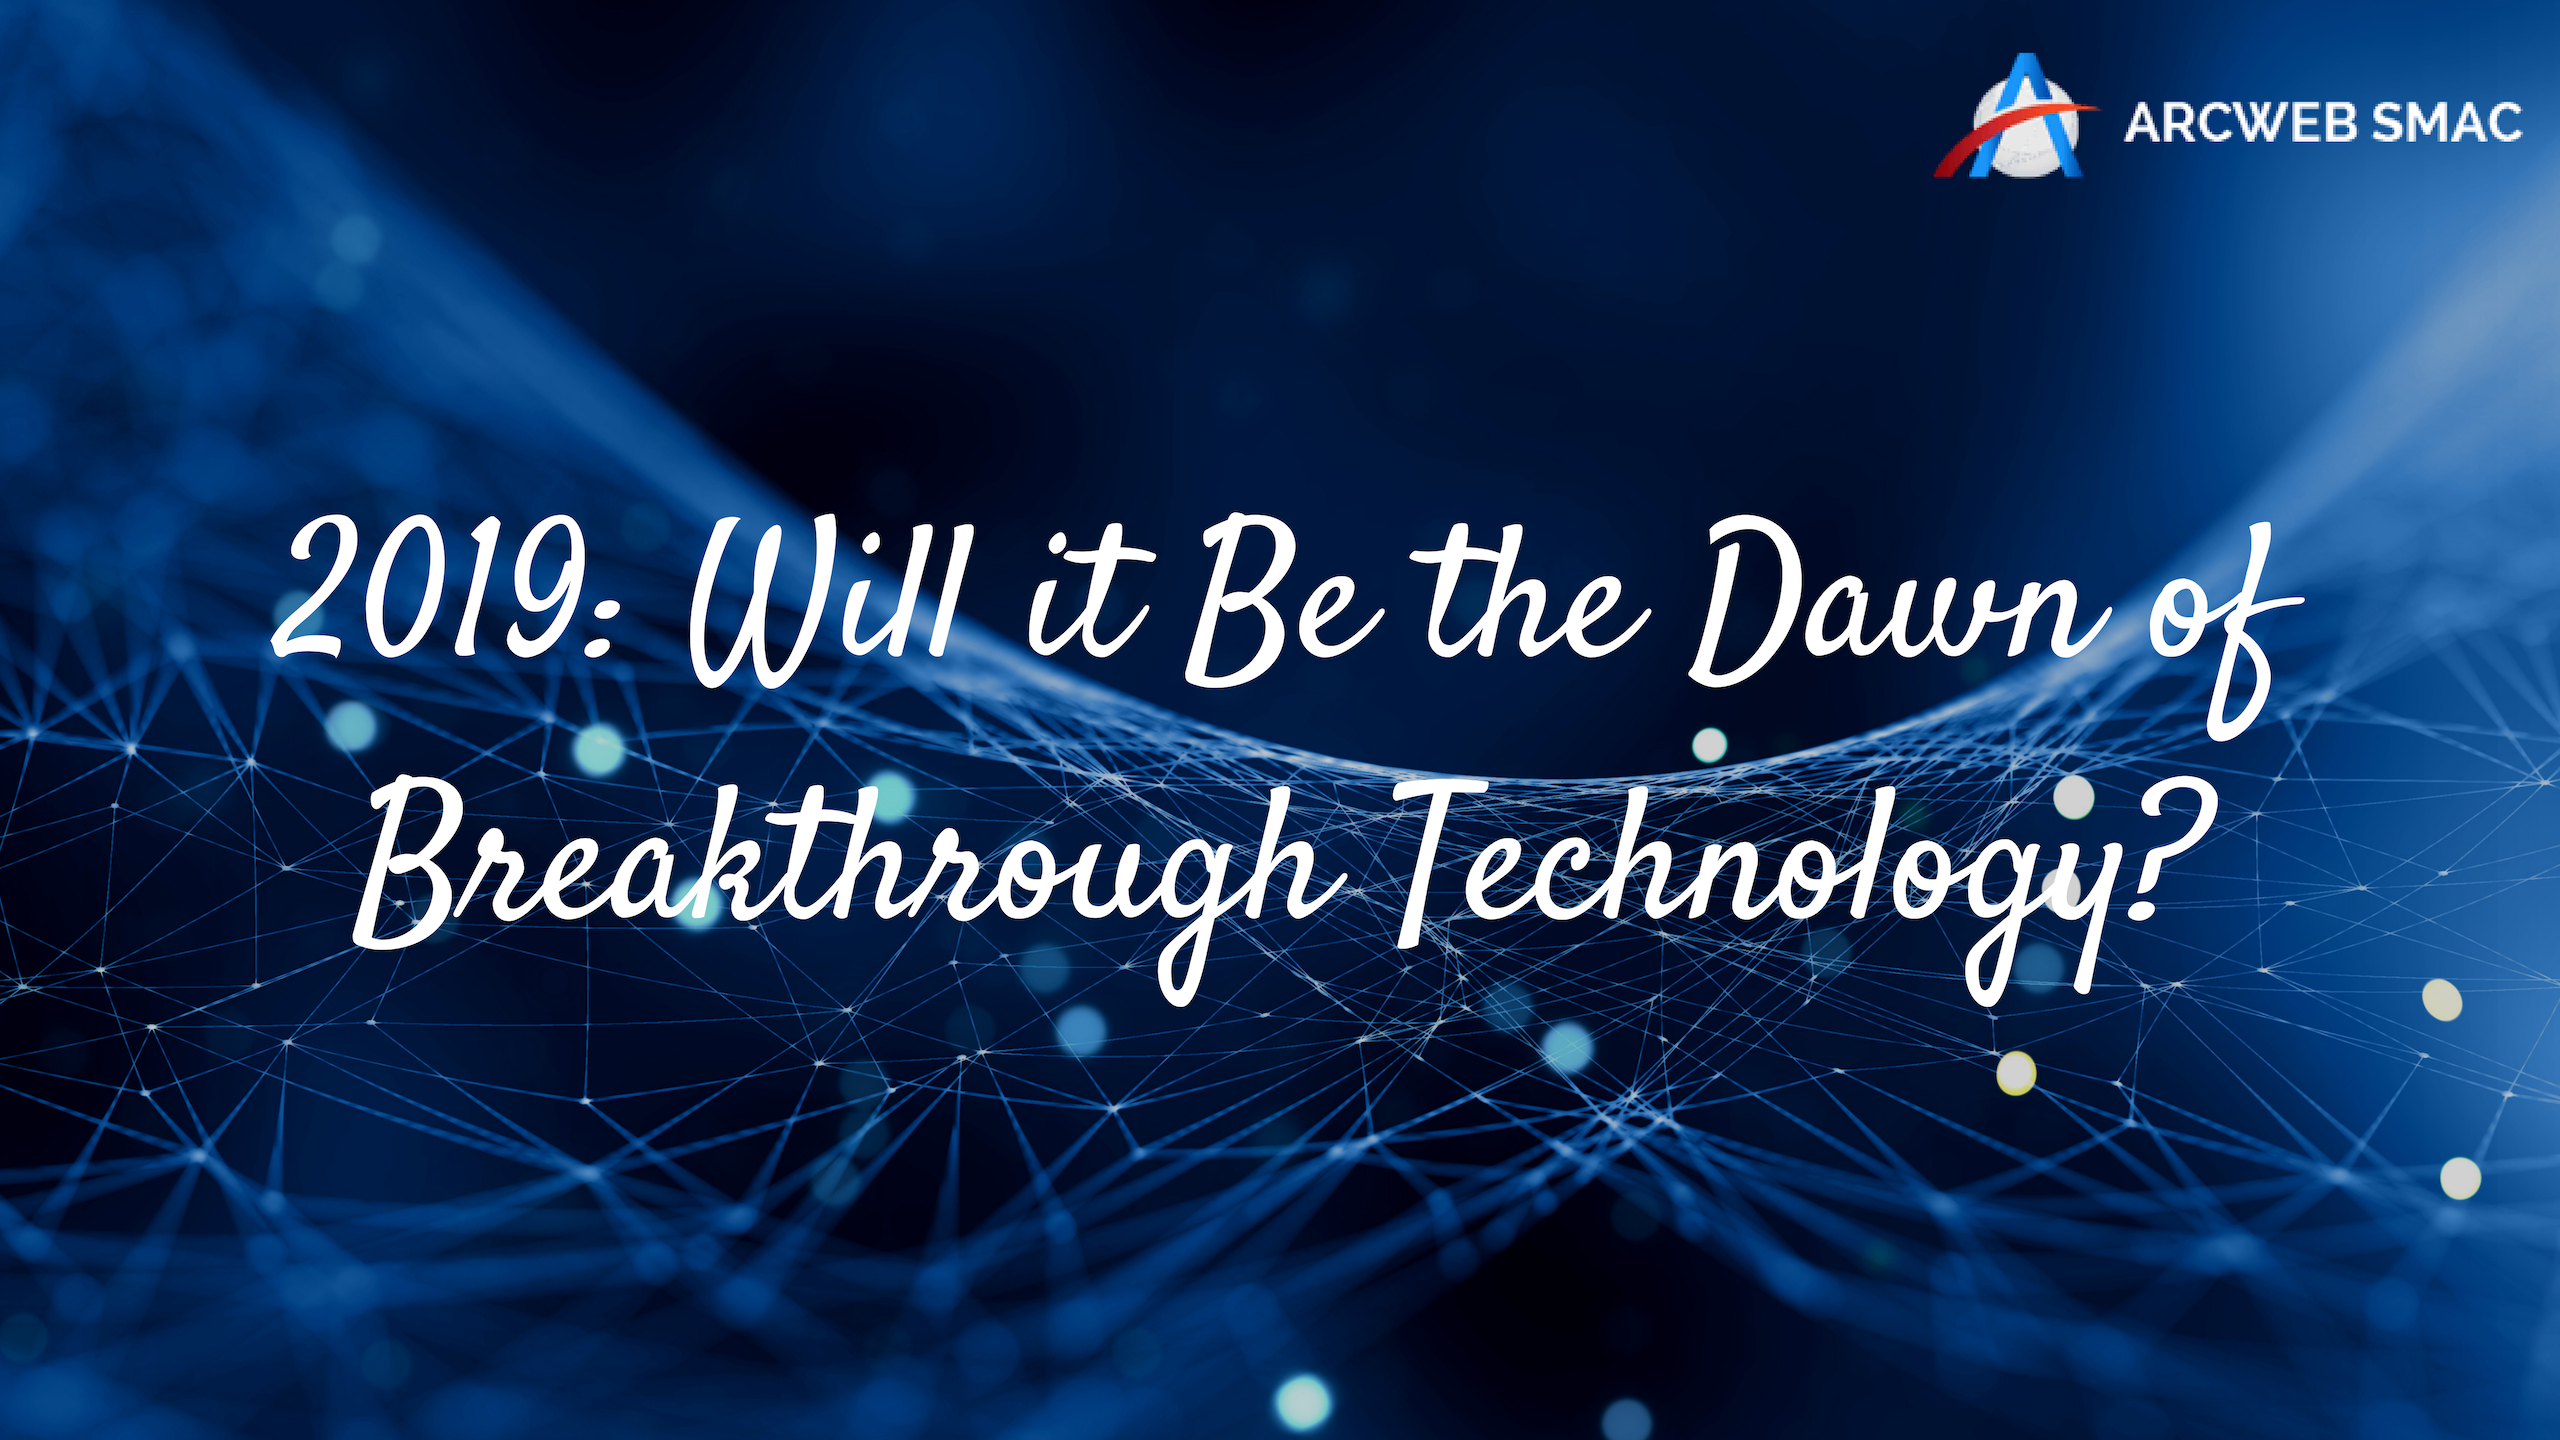 2019: Will it Be the Dawn of Breakthrough Technology?